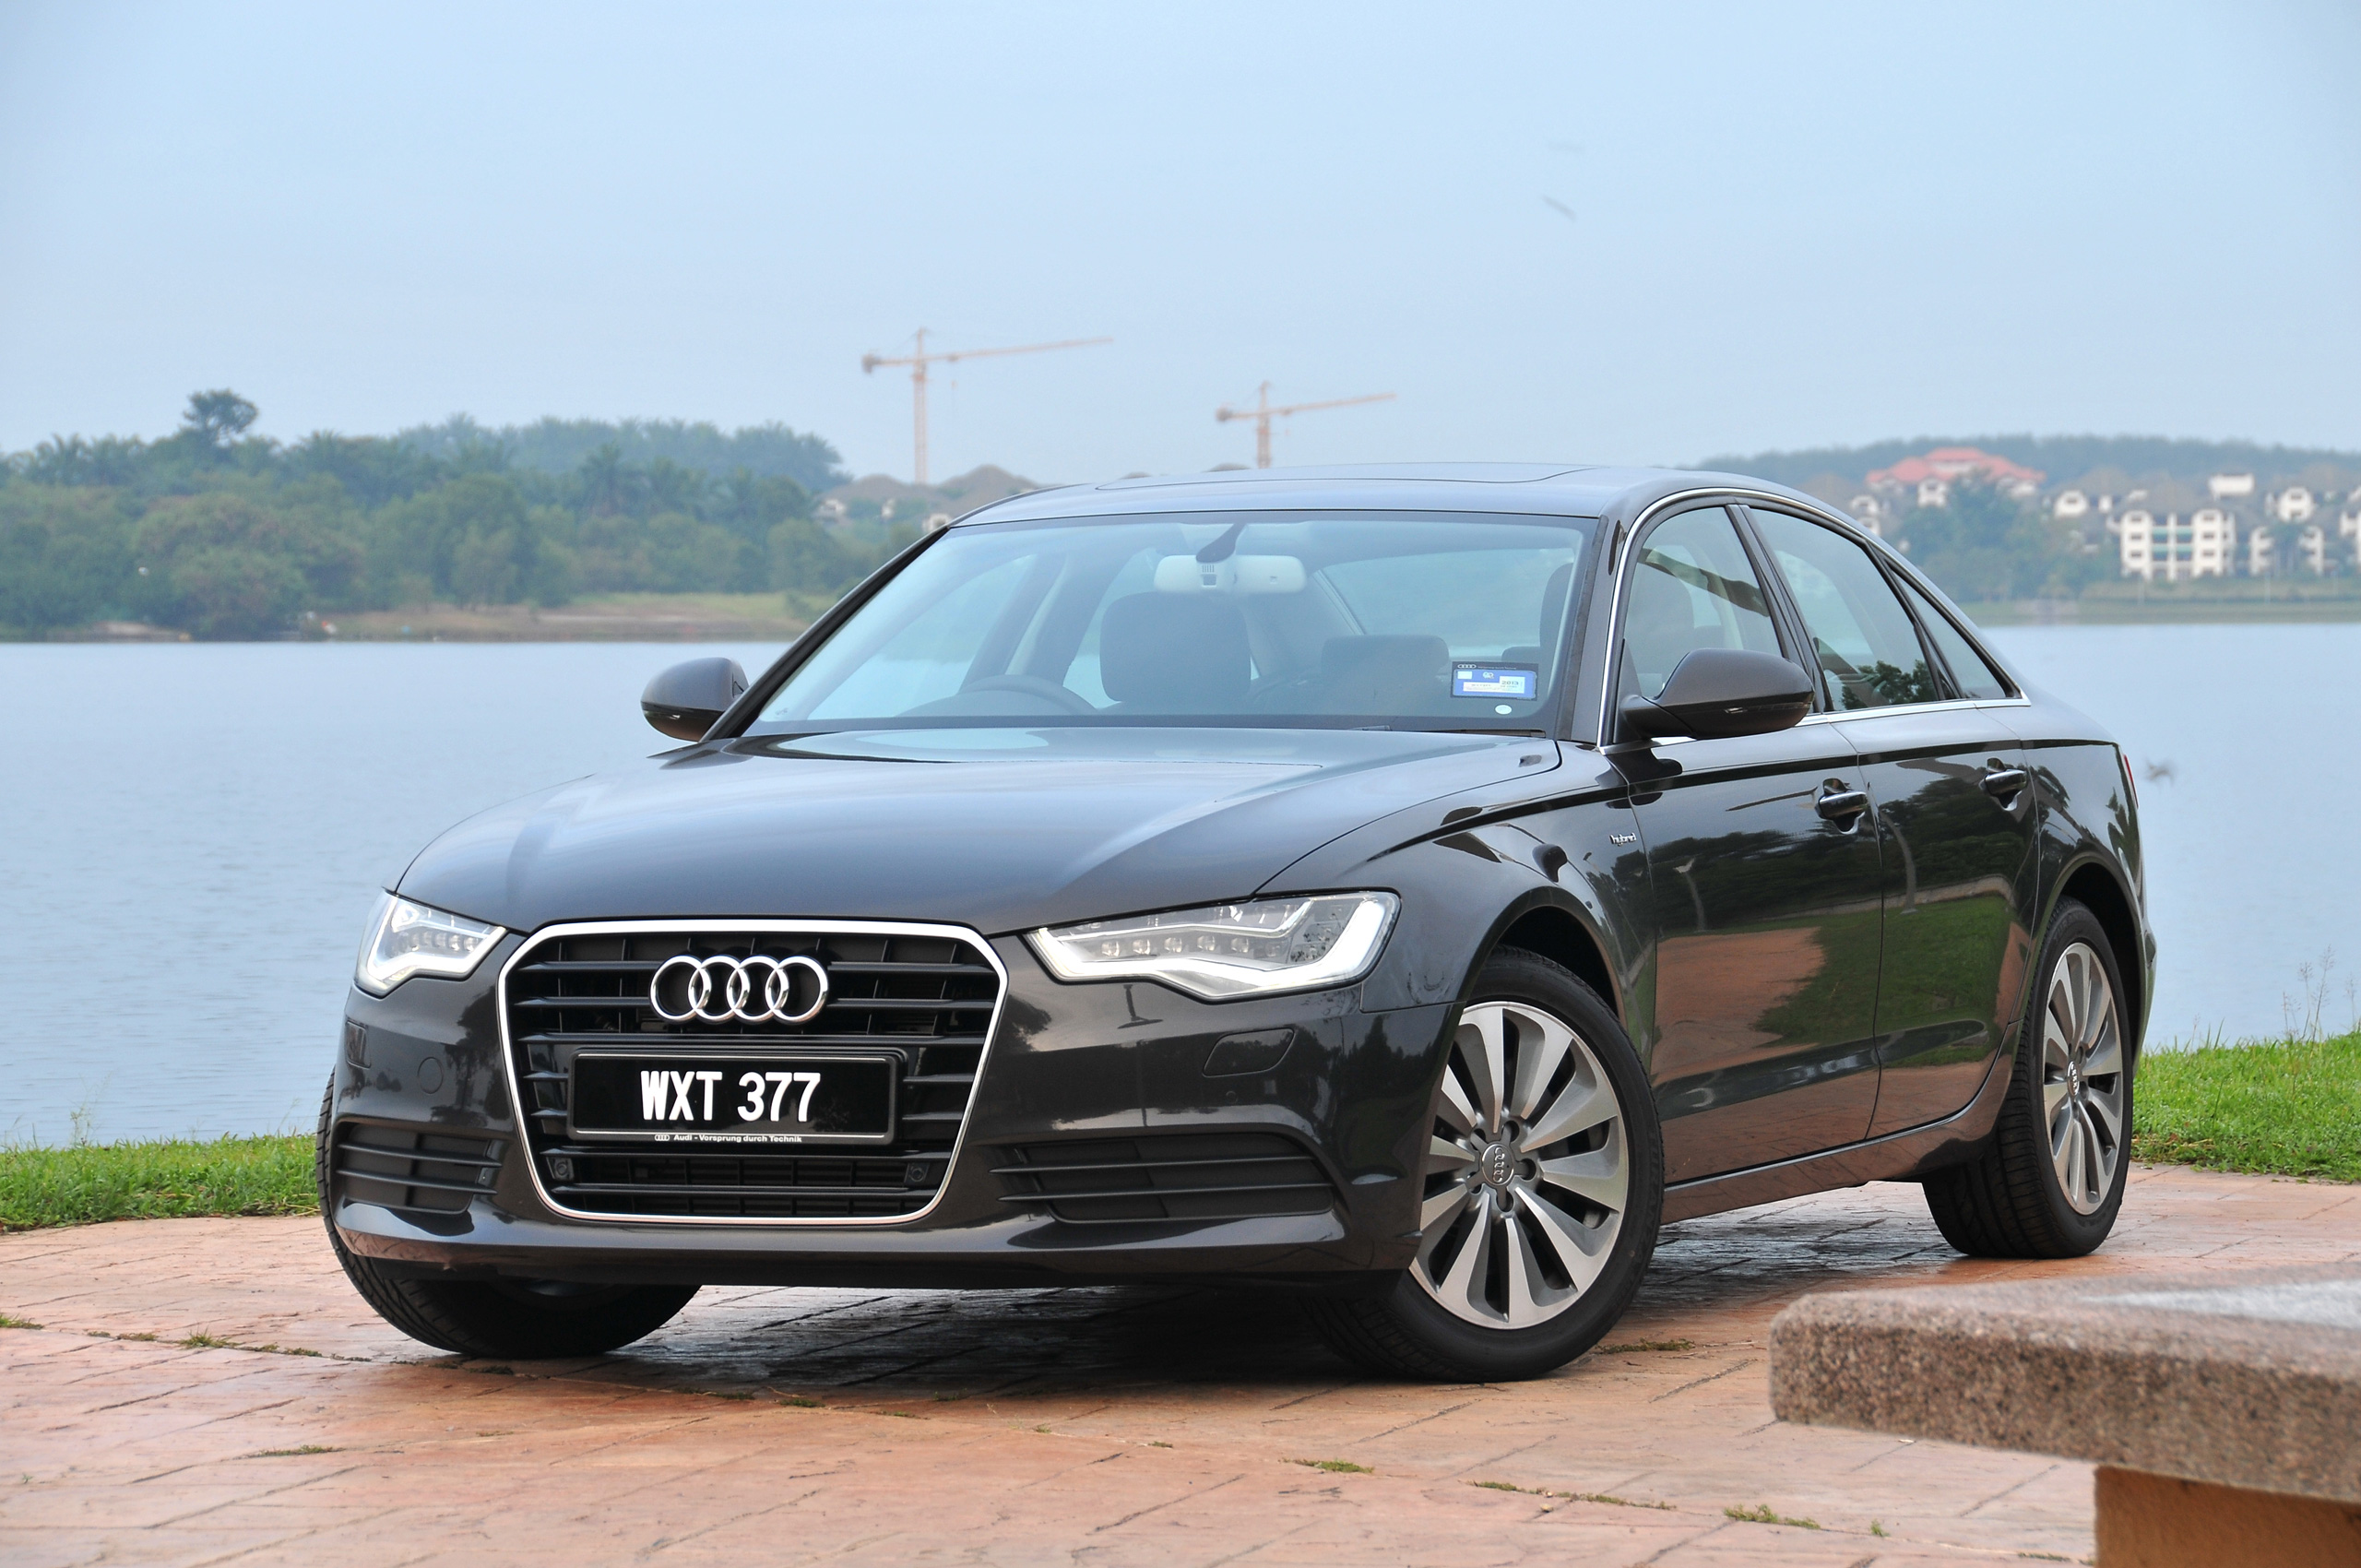 Driven New Audi A6 Hybrid Full Test Drive Review Sure